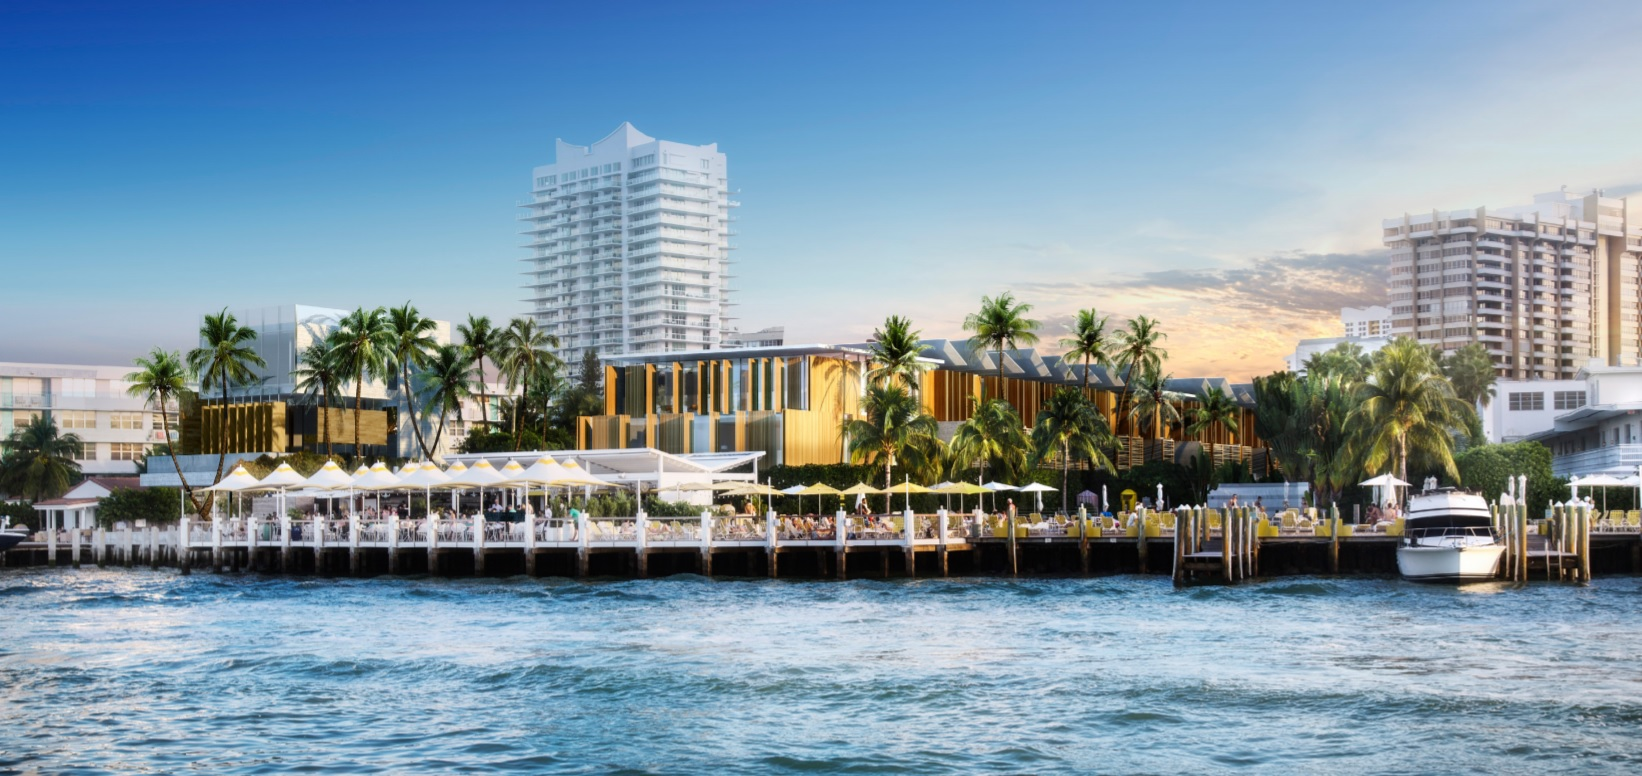 Rendering of the new Standard Miami Beach